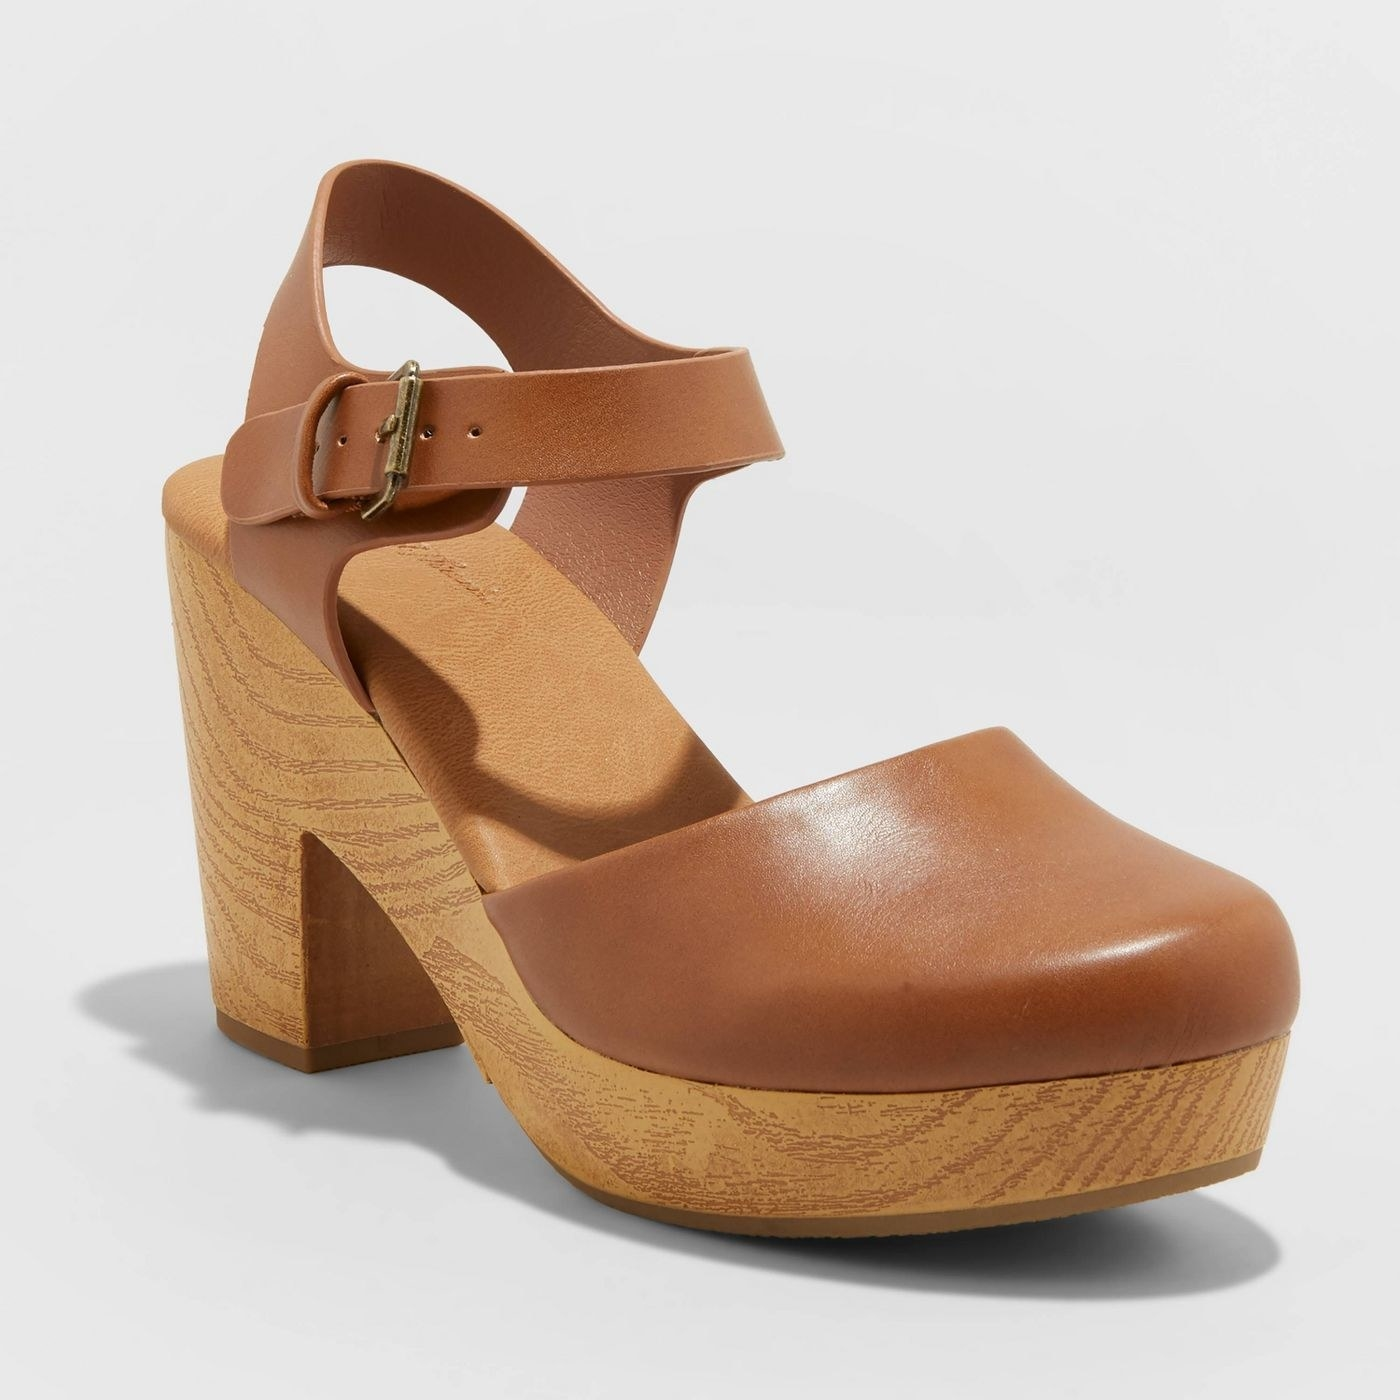 The brown buckled heels with a wooden heel and platform